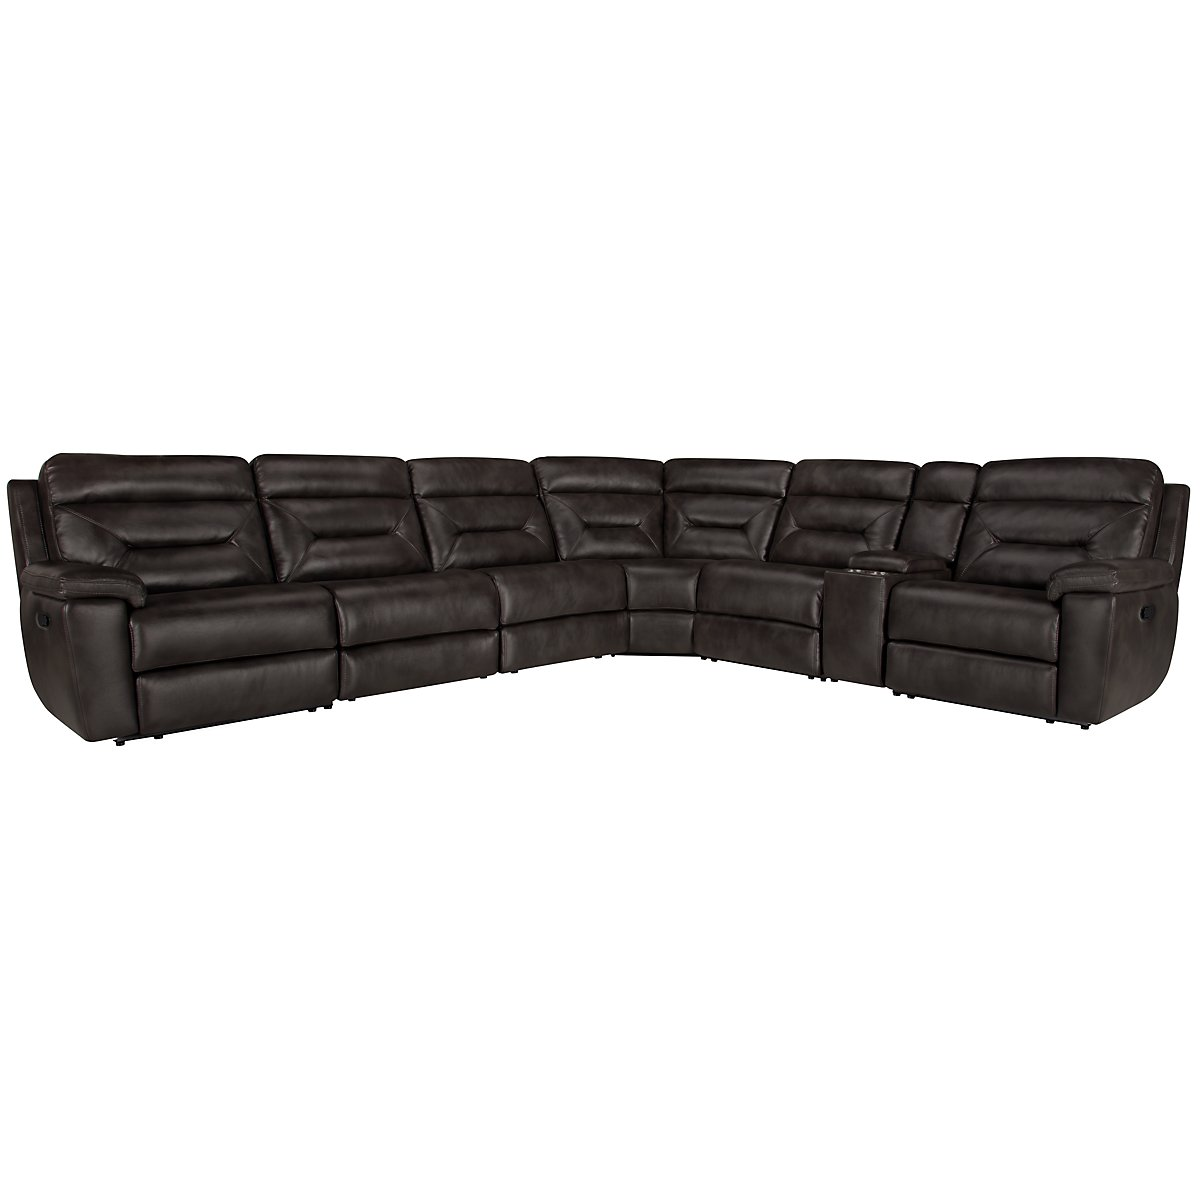 Phoenix Dk Gray Microfiber Large Two-Arm Manually Reclining Sectional